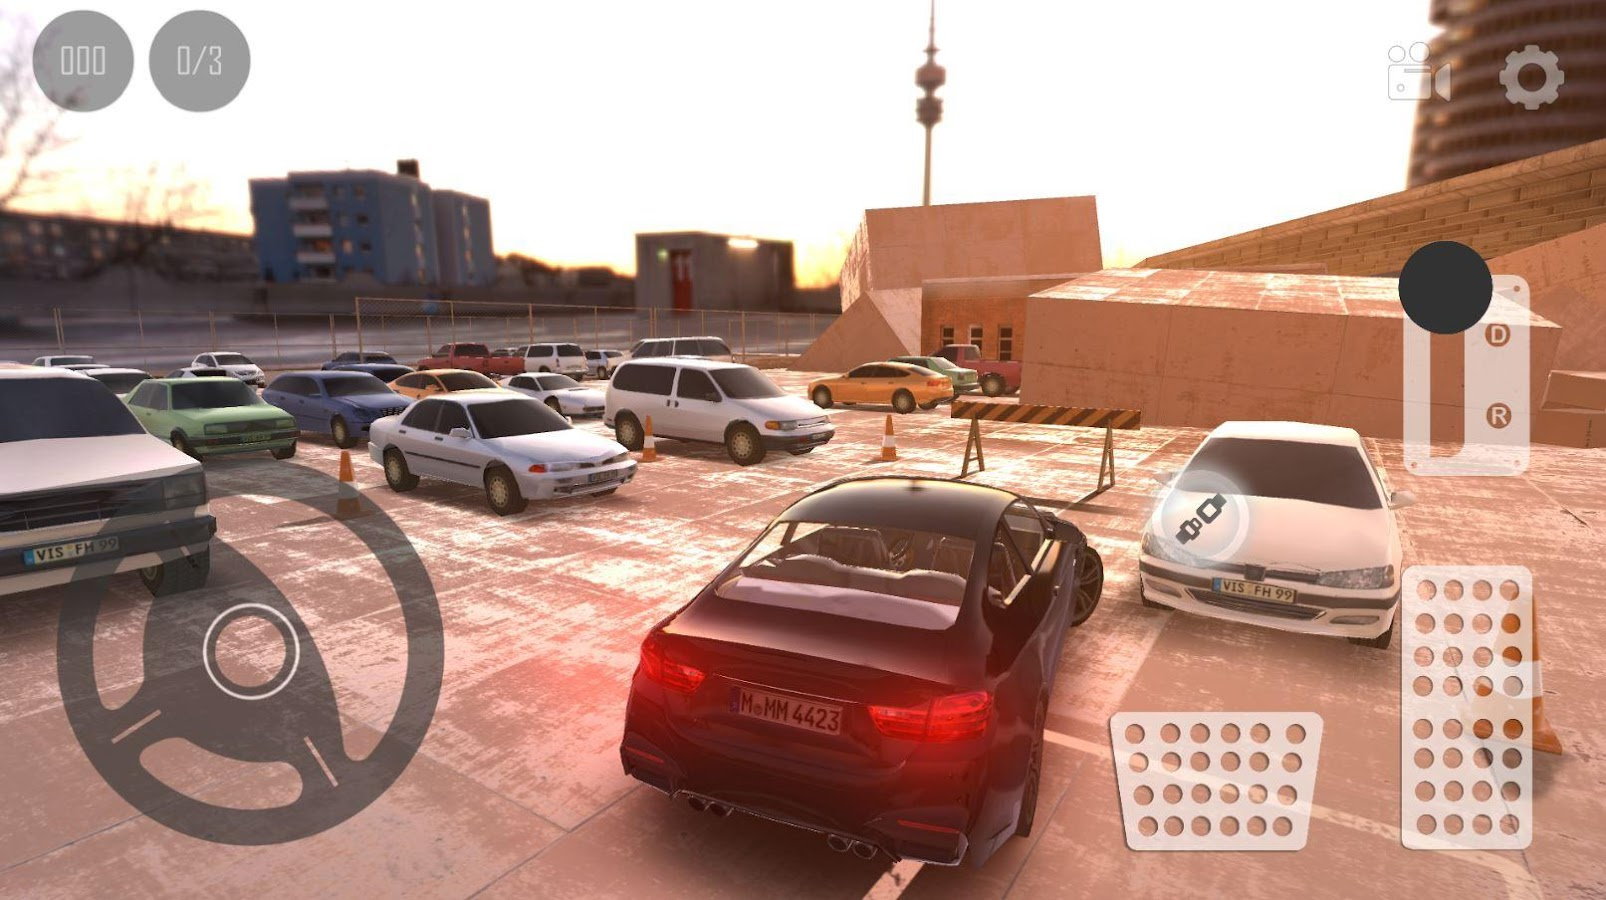 Real Car Parking 2017 Street 3D Screenshot 19